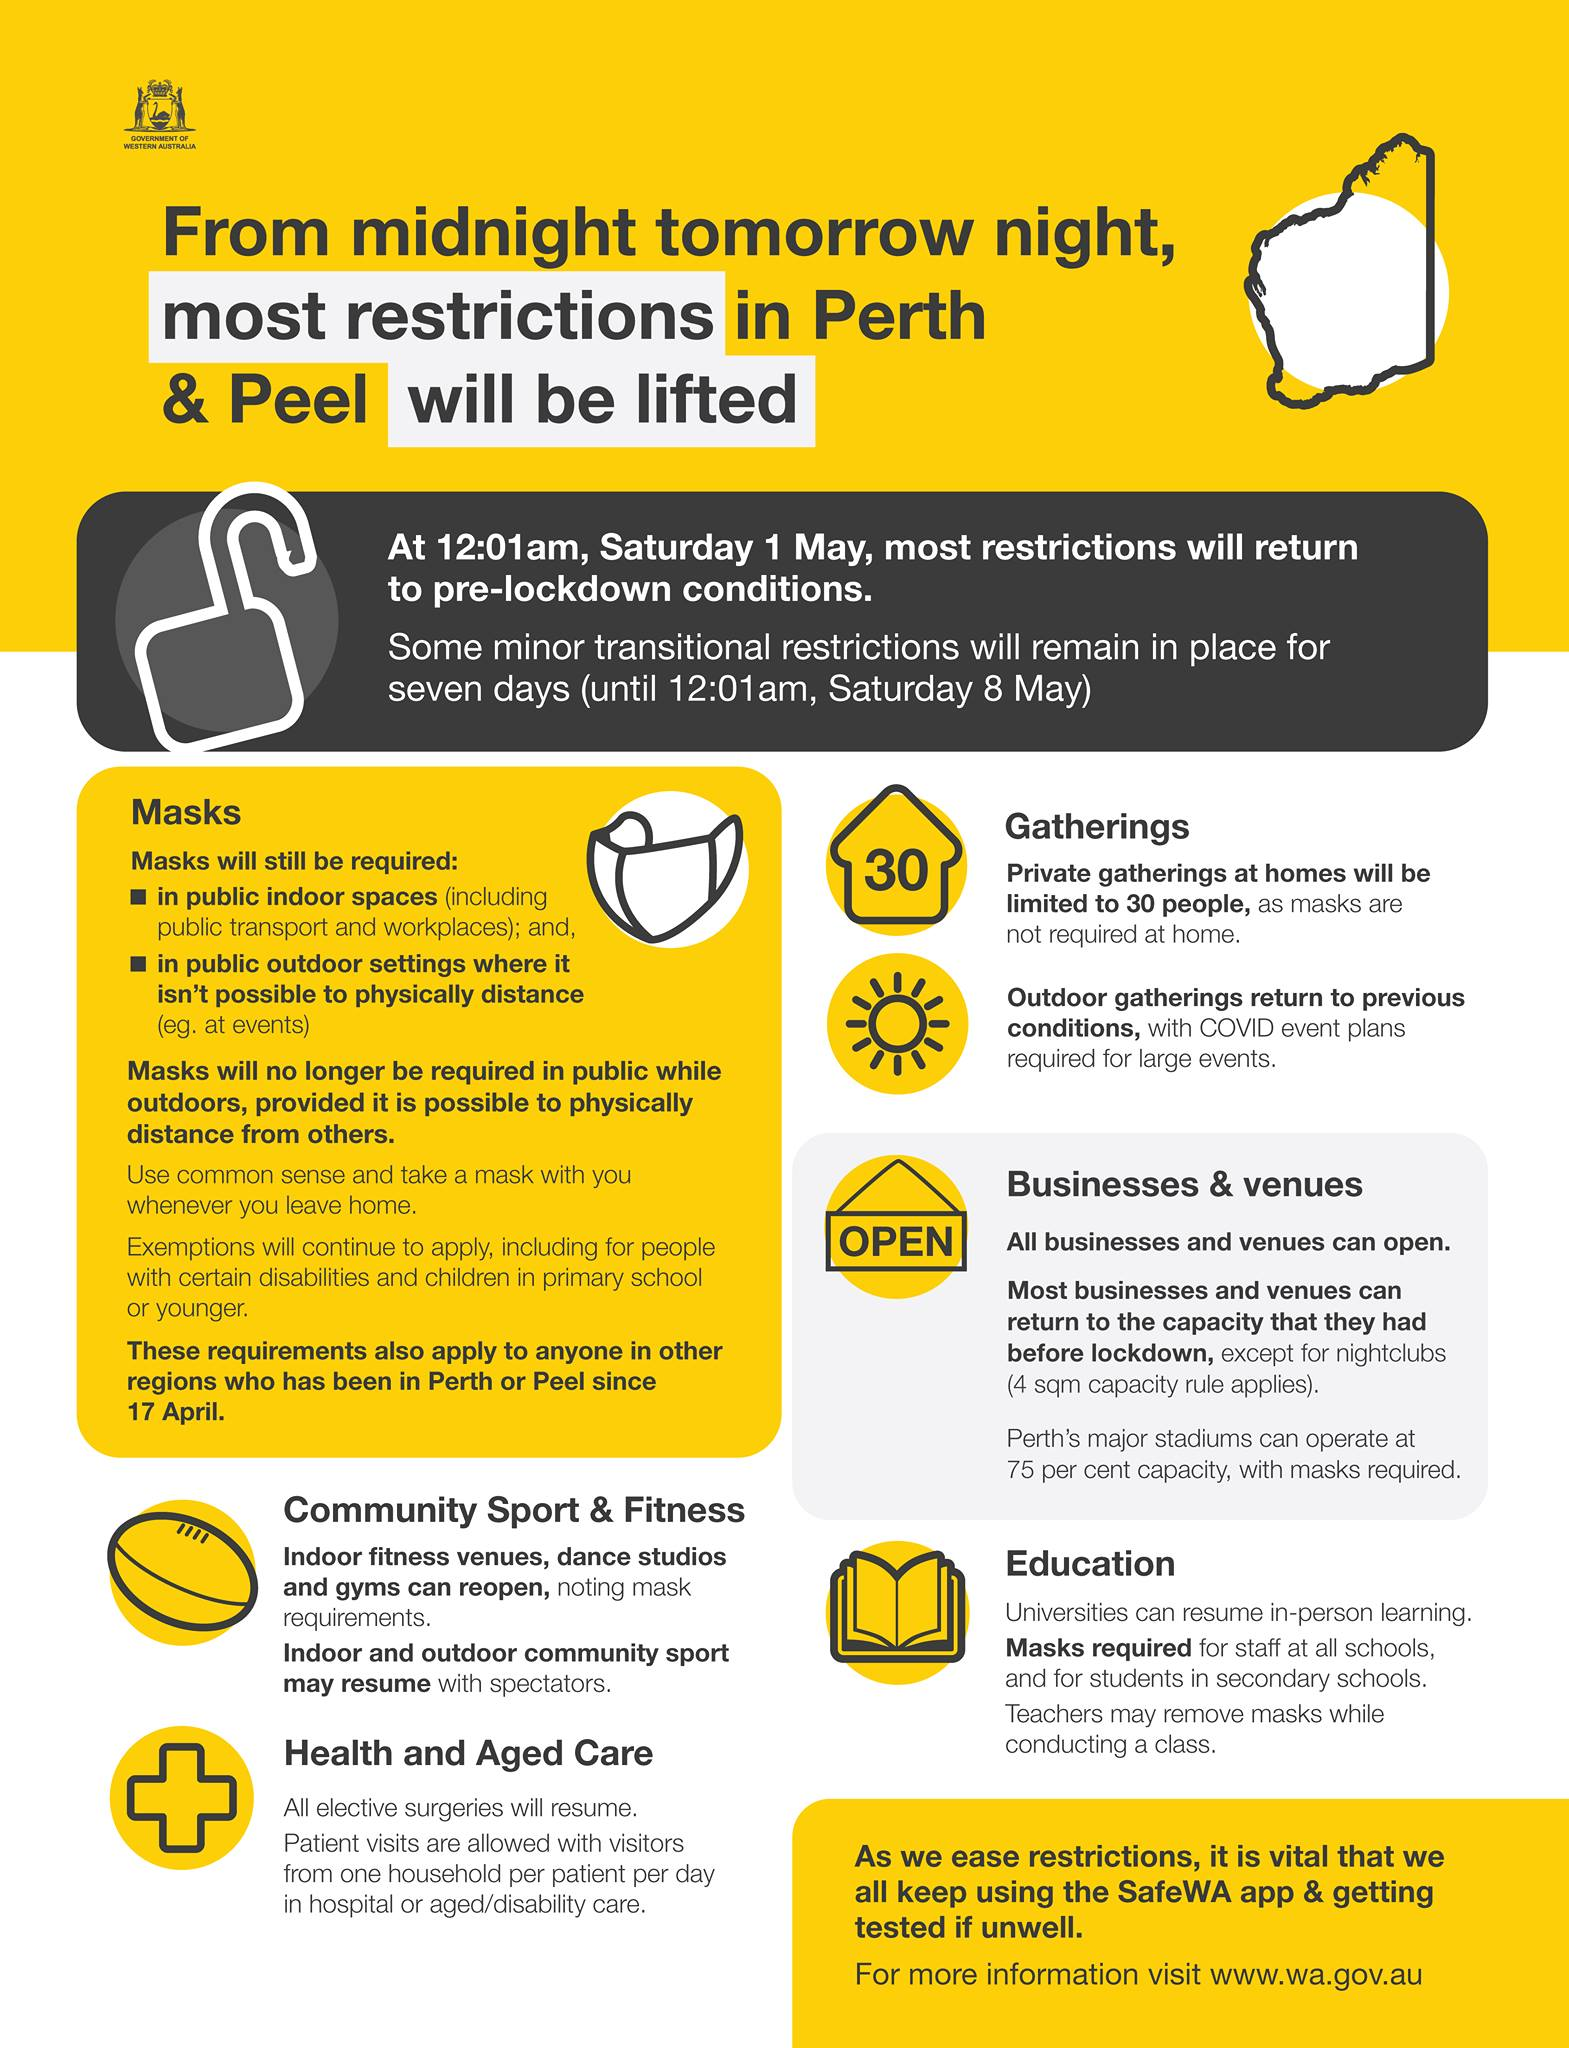 Wa restrictions for the 1st of may until the 8th of may